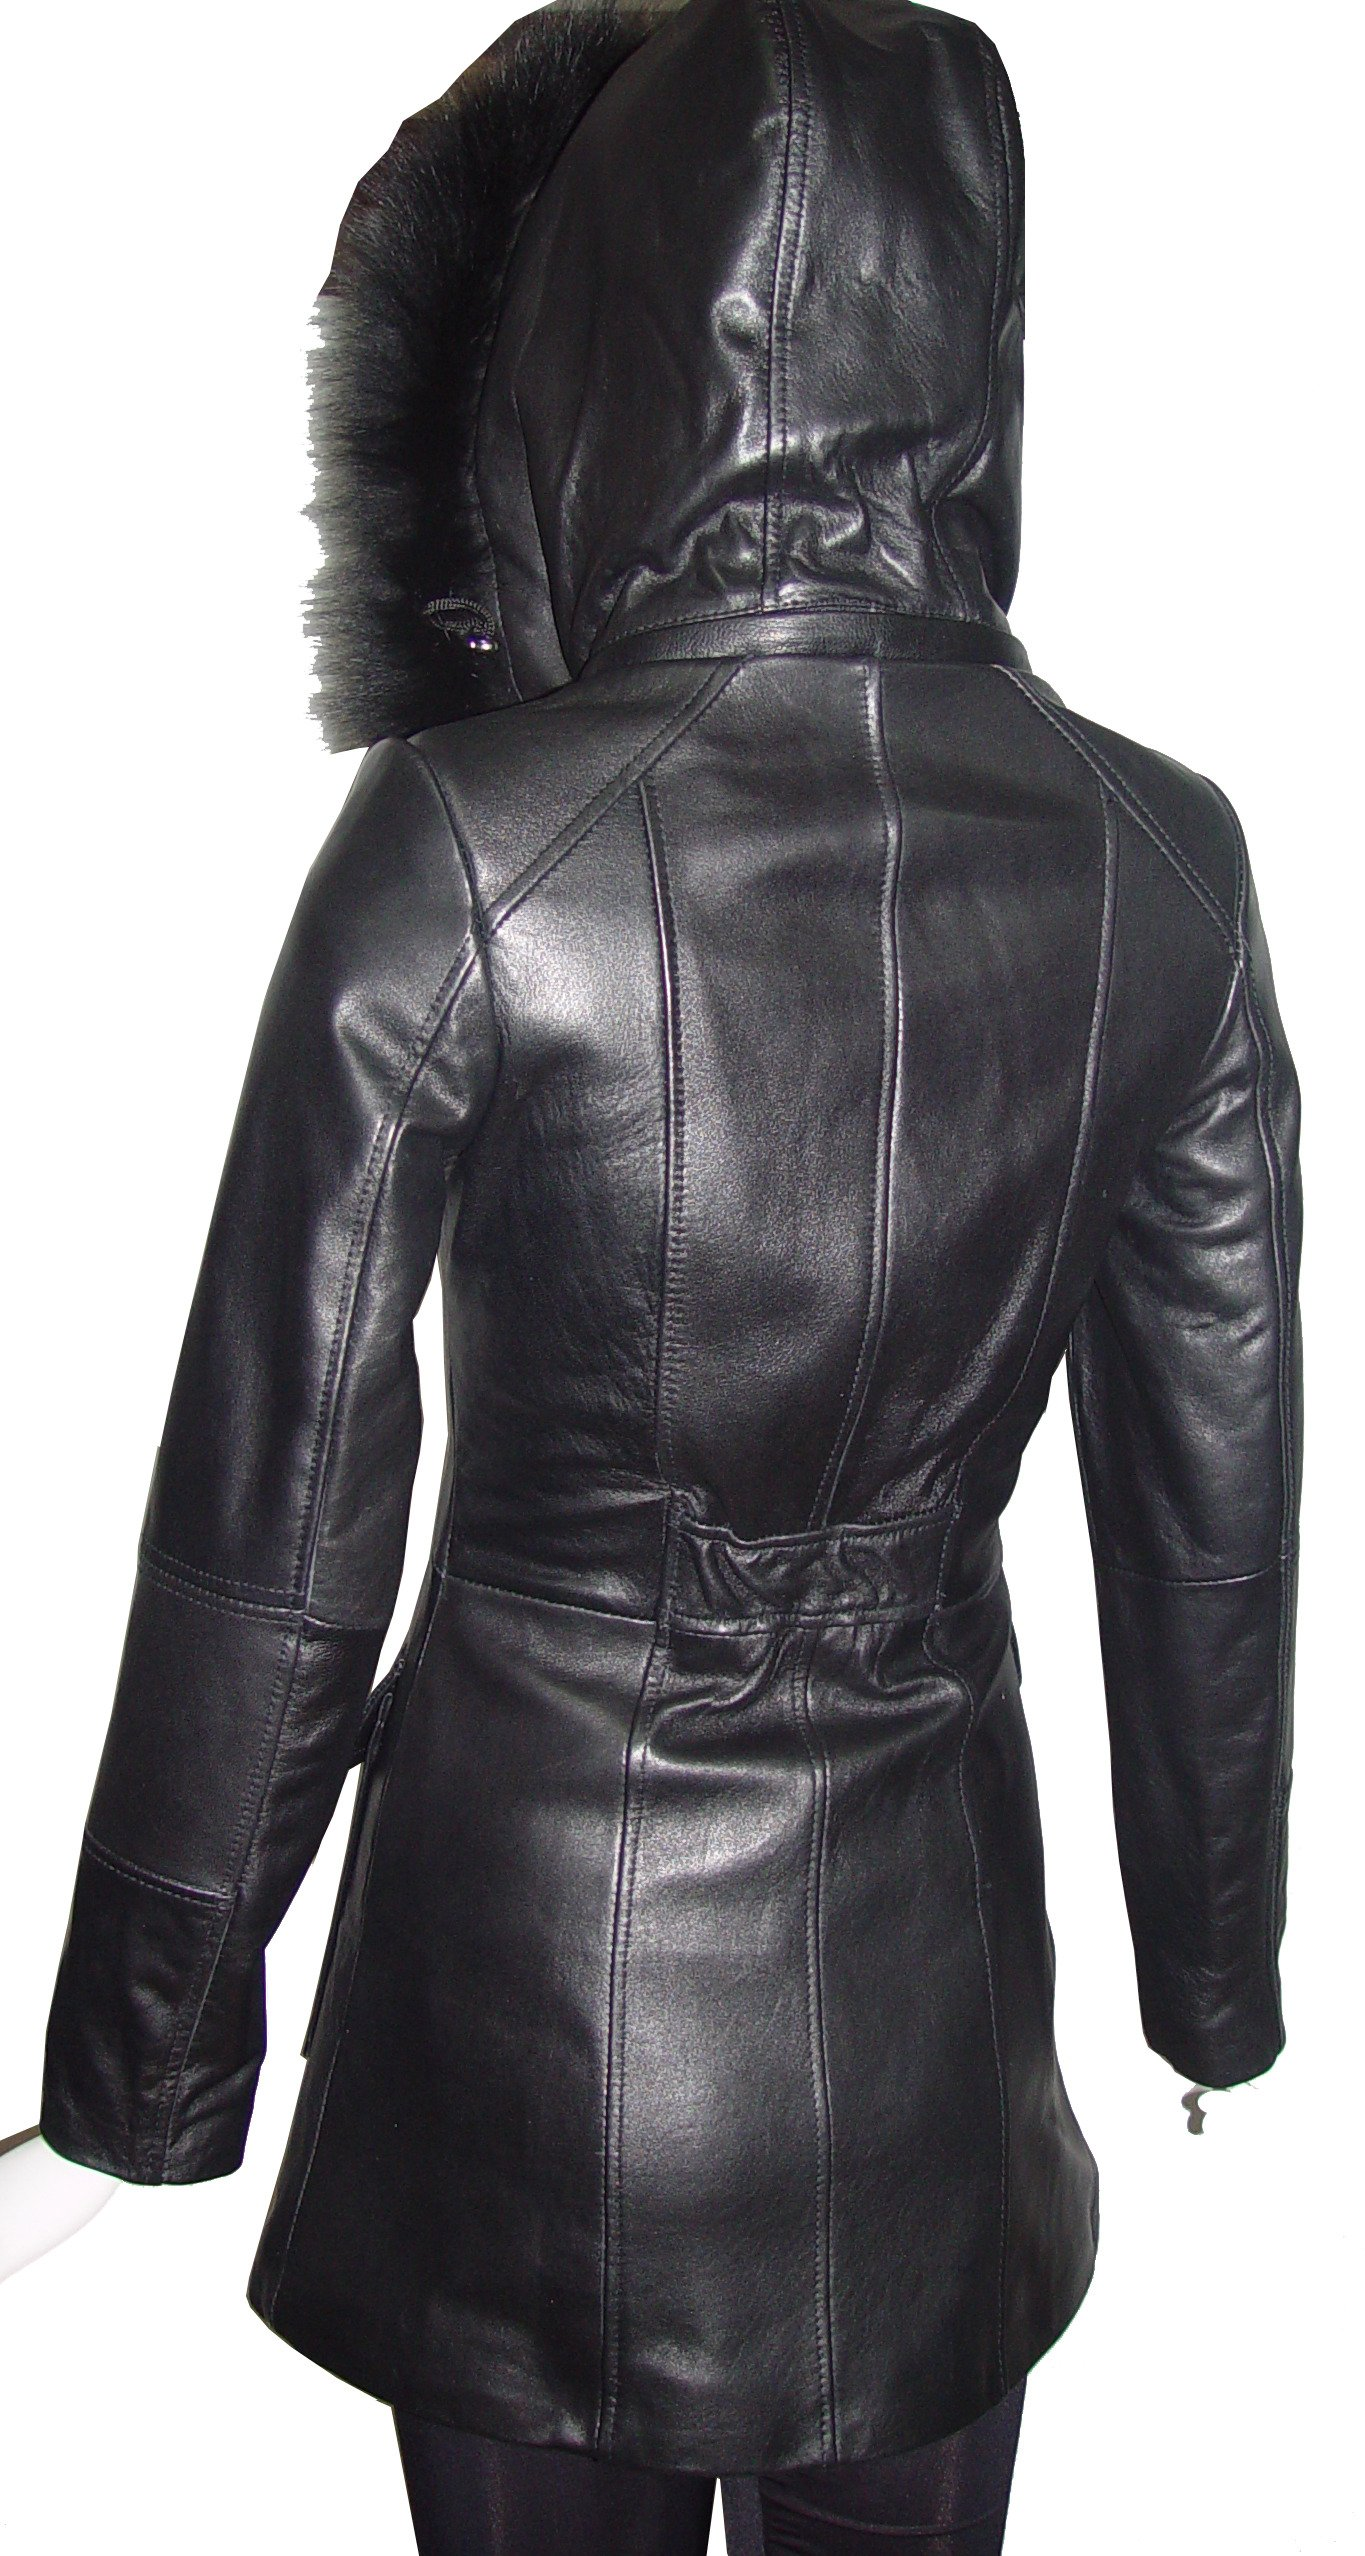 Paccilo 4 Season Wear Womens 4177 PETITE & ALL SIZELambskin Leather Parka Jacket by Paccilo (Image #7)